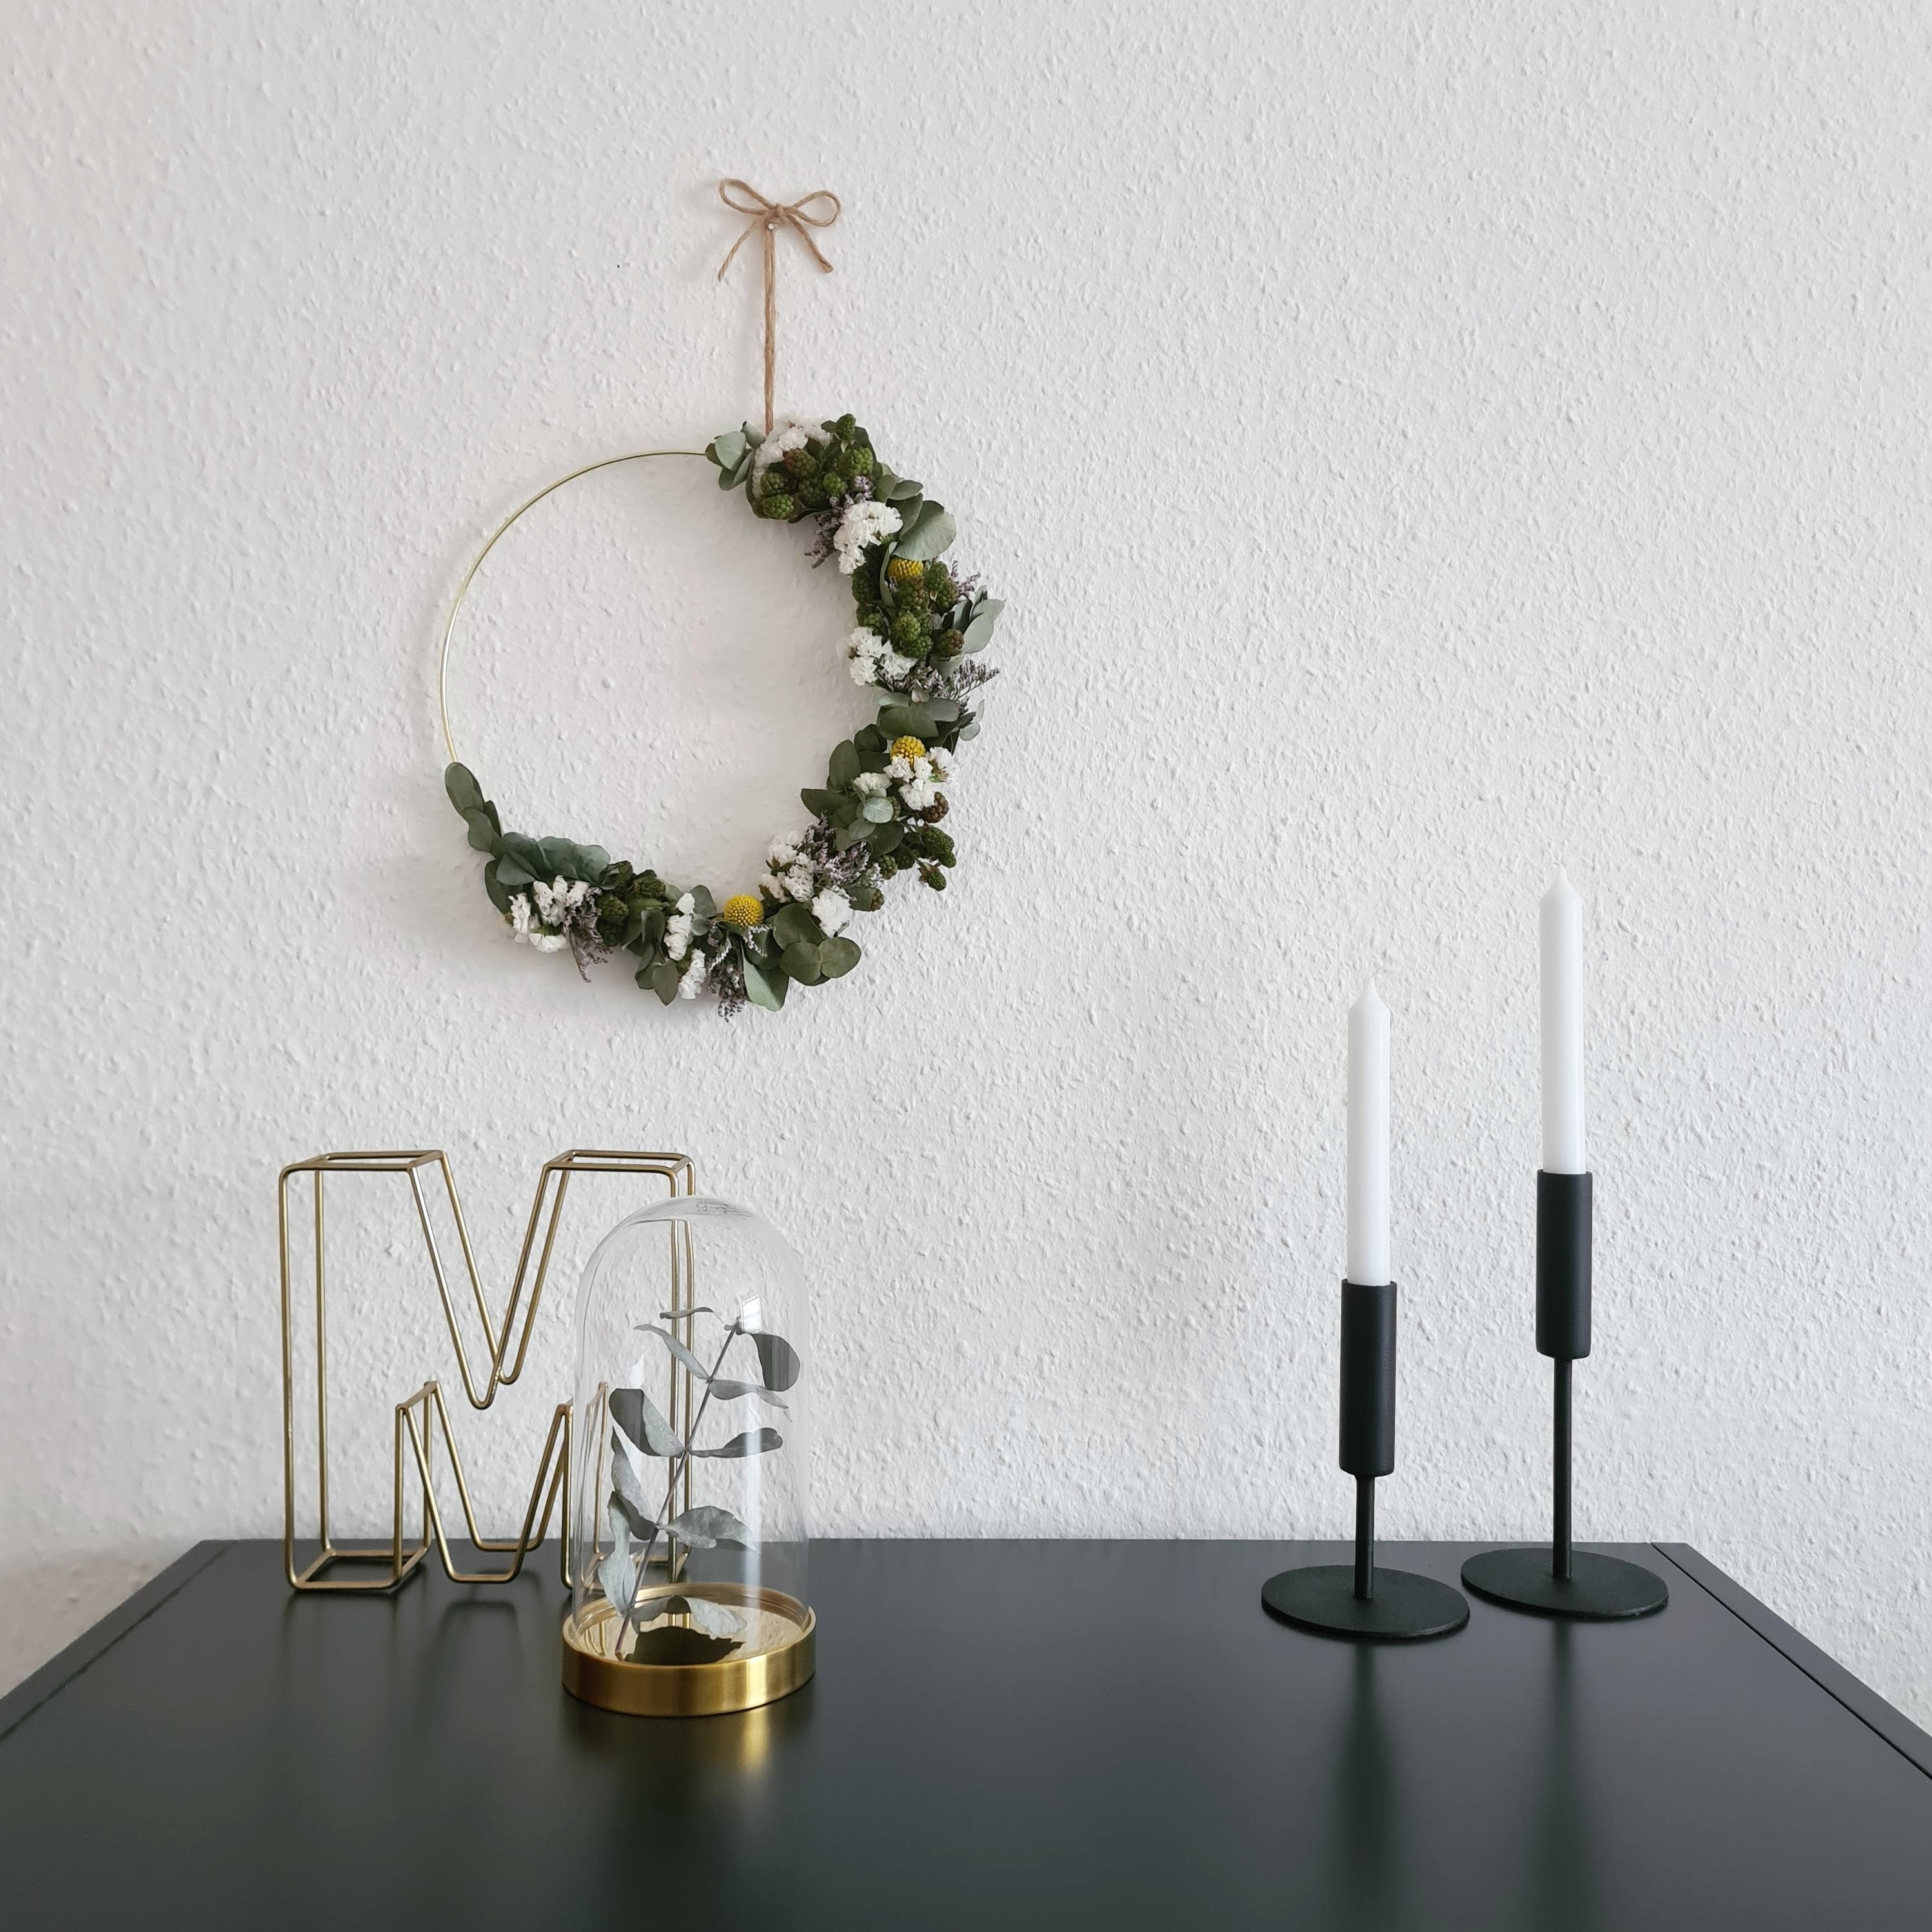 #blumenkranz #diy #flowerwreath #candles #hygge #scandistyle #monochromehome